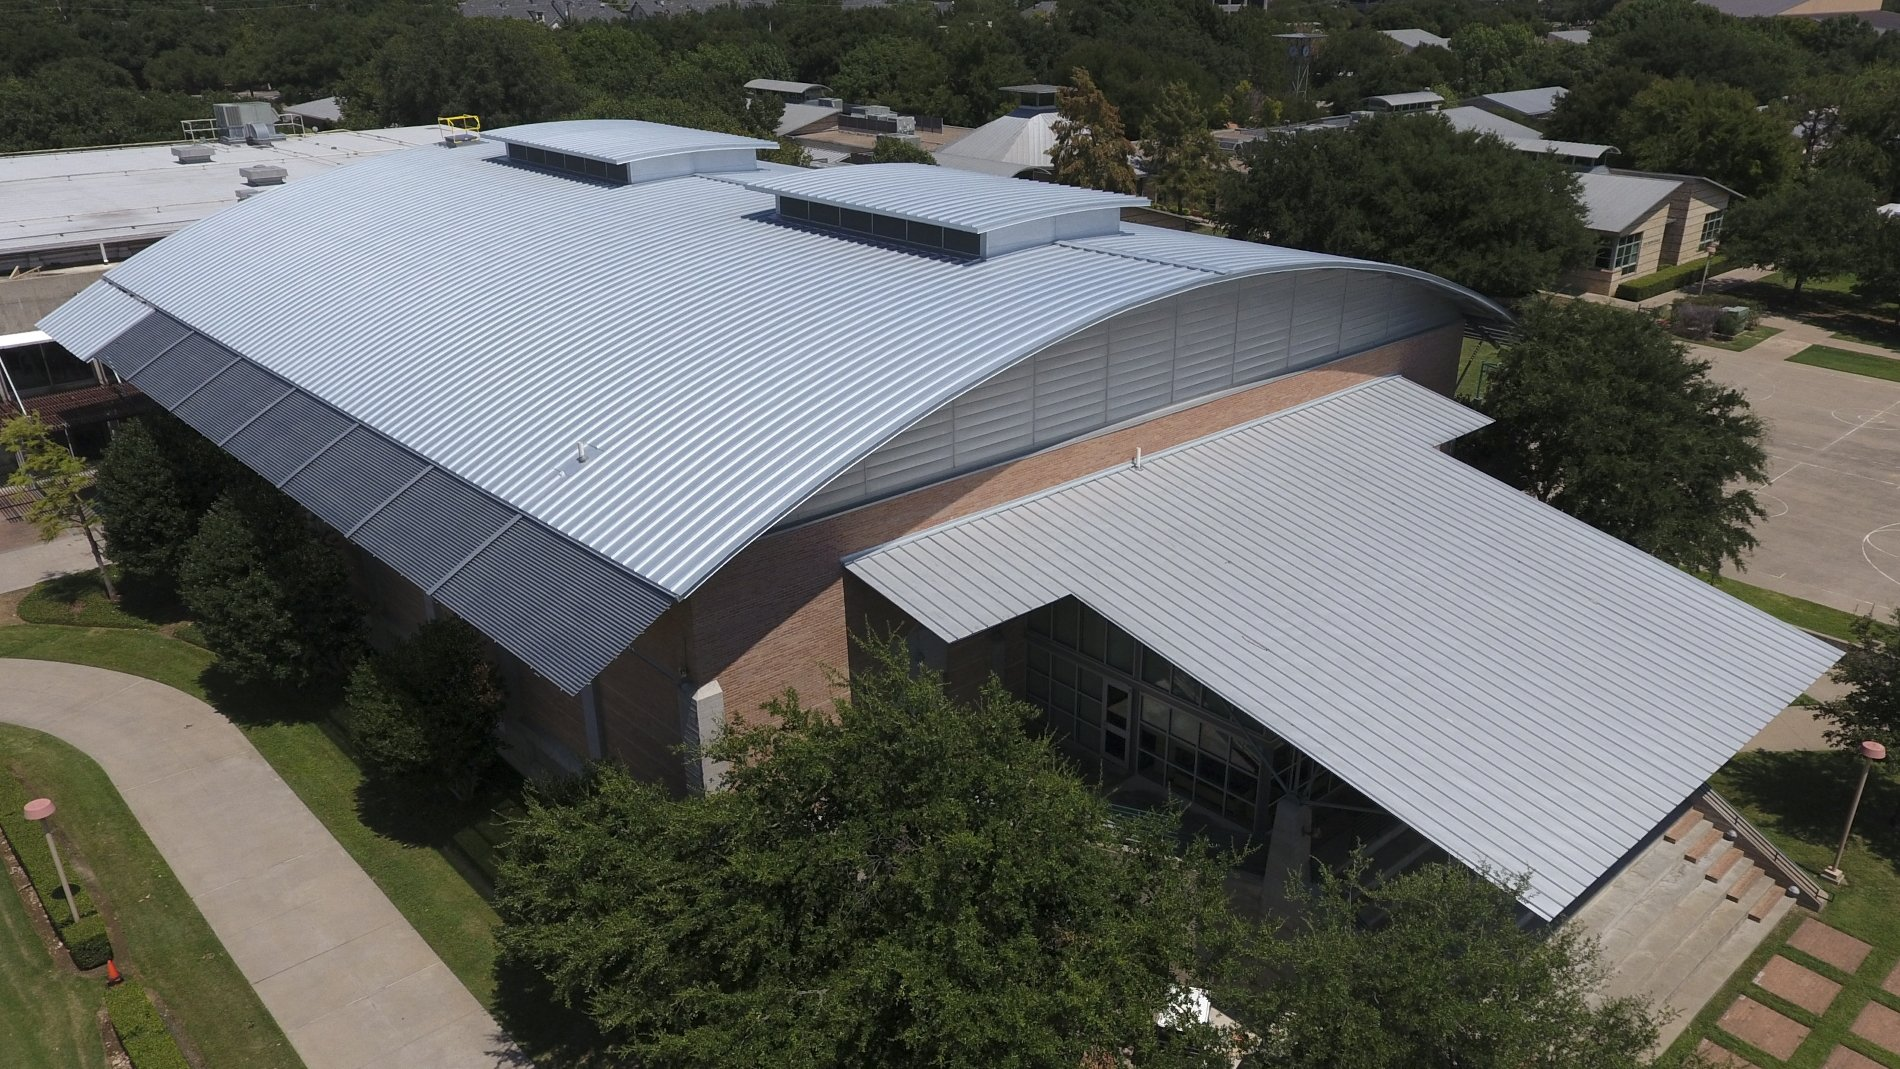 greenhill-school-238T-symmetrical-standing-seam